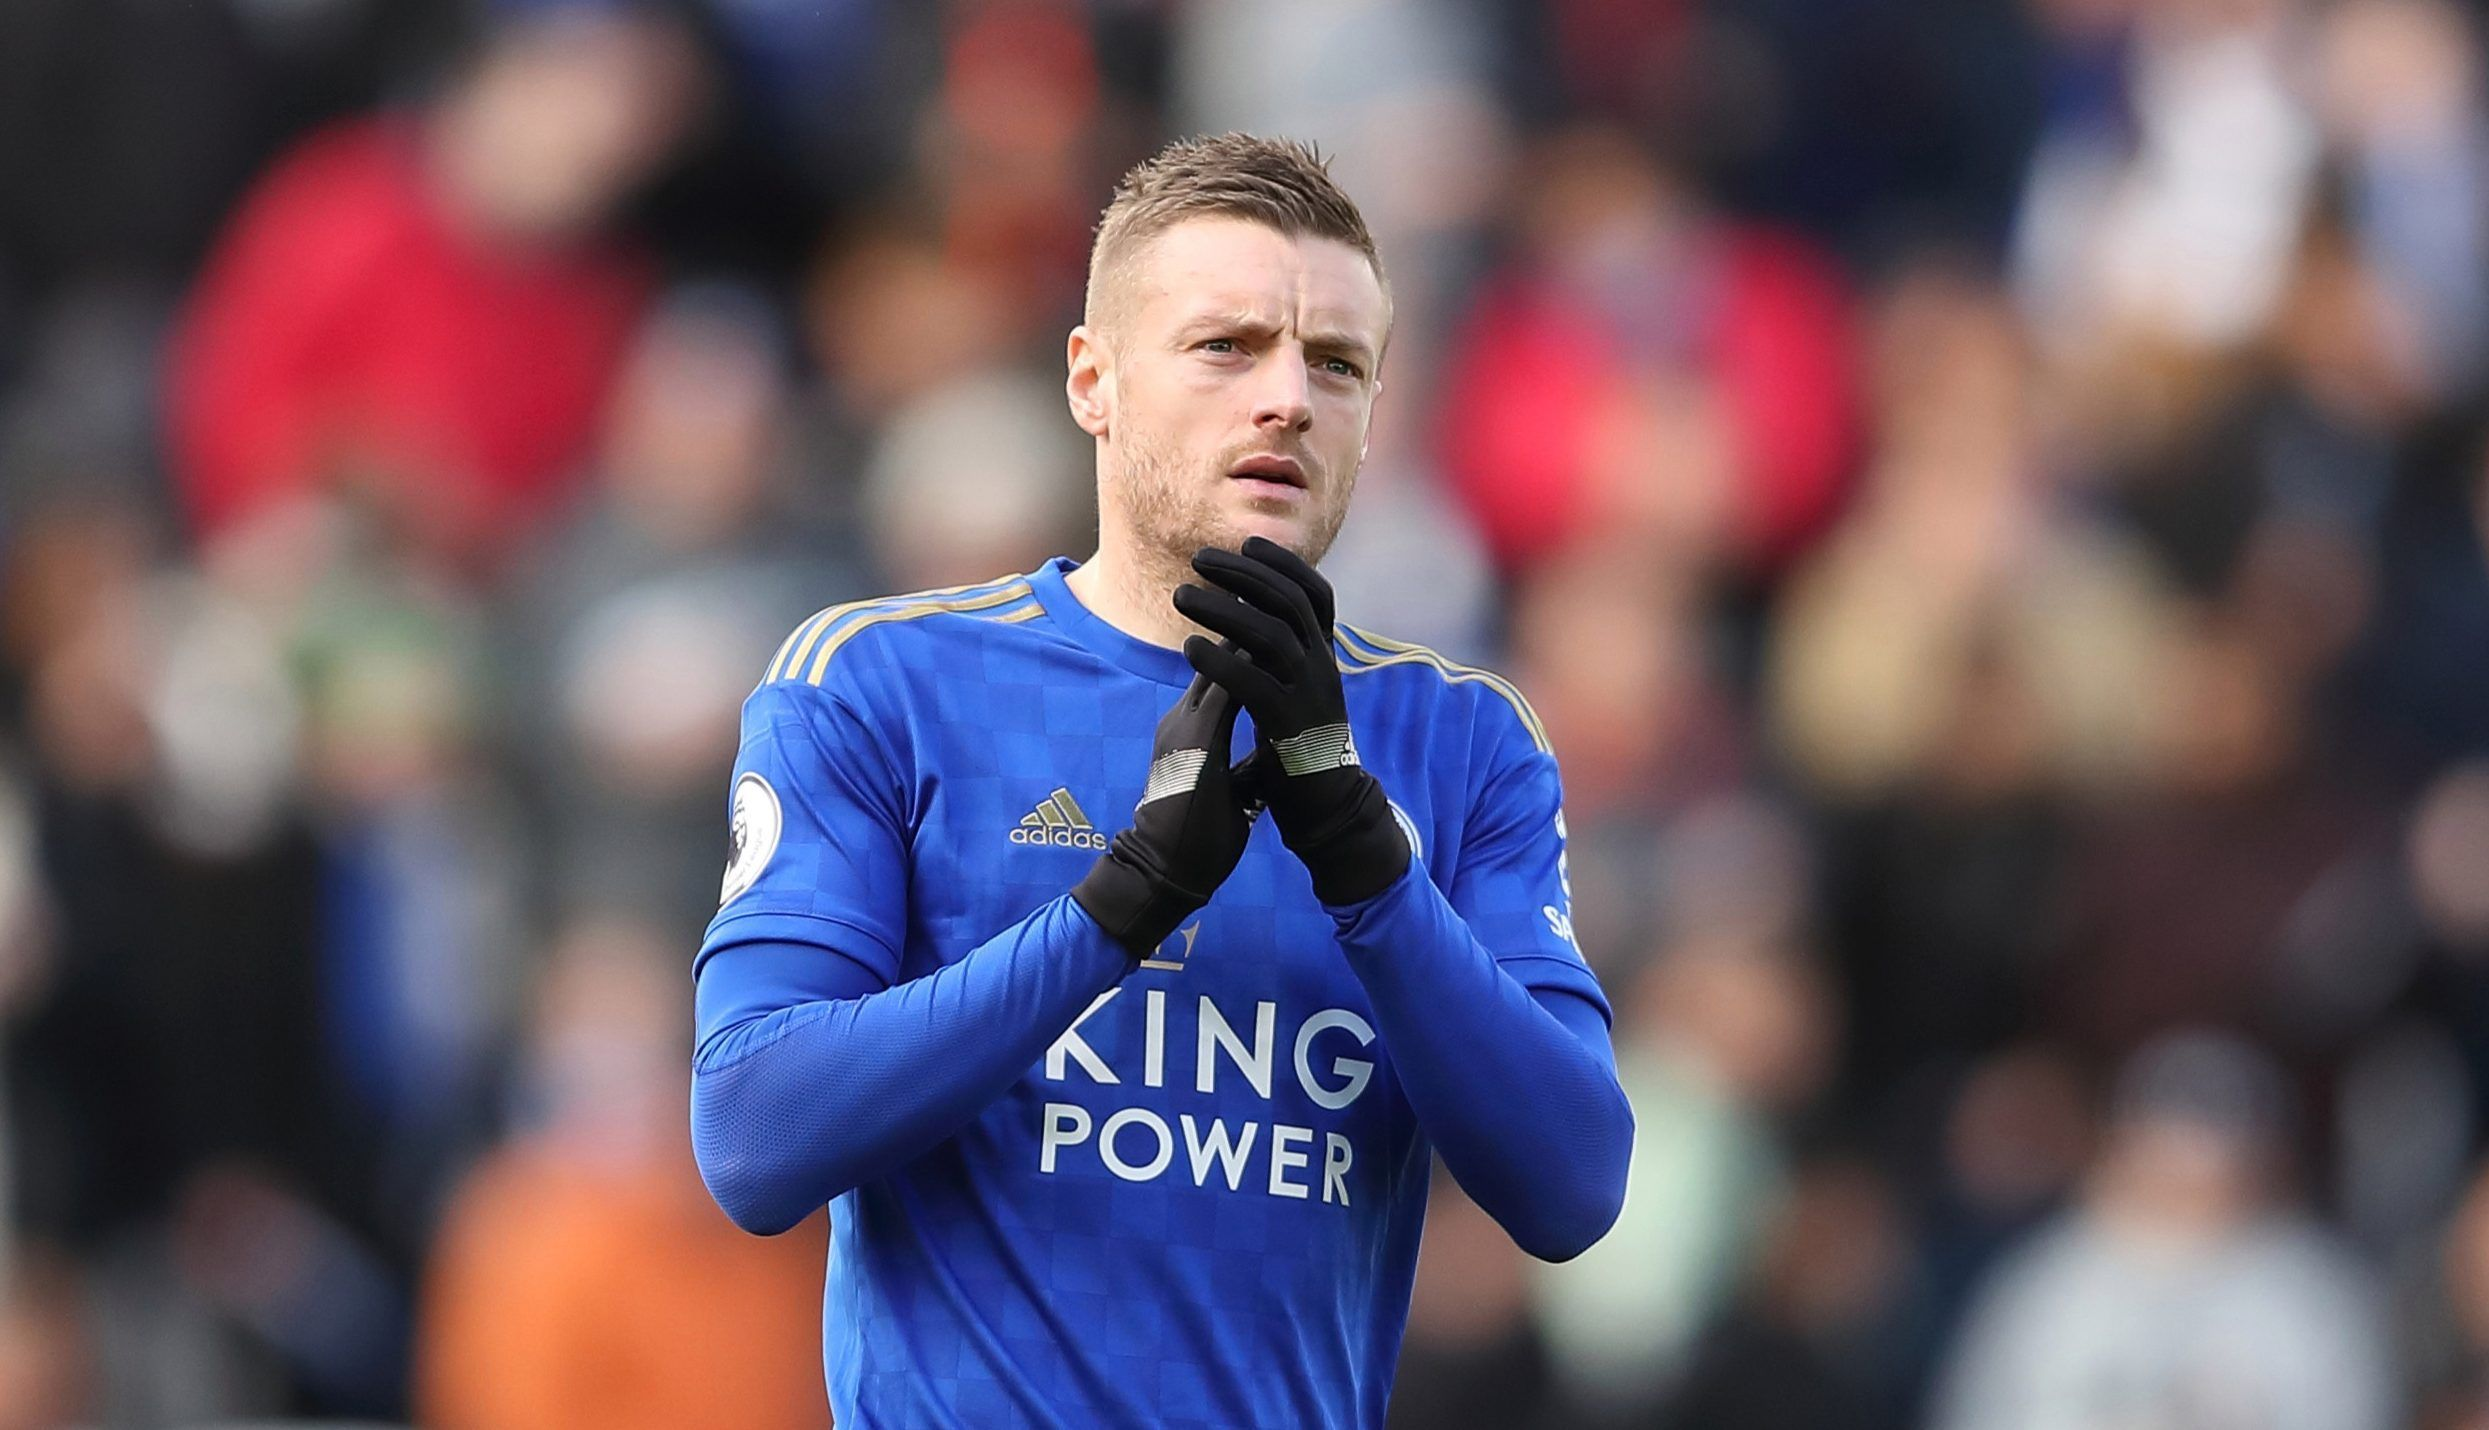 Wolves Vs Leicester Free Live Stream Tv Channel Kick Off Time And Team News For Premier League Match Footba Premier League Matches Premier League Tv Channel